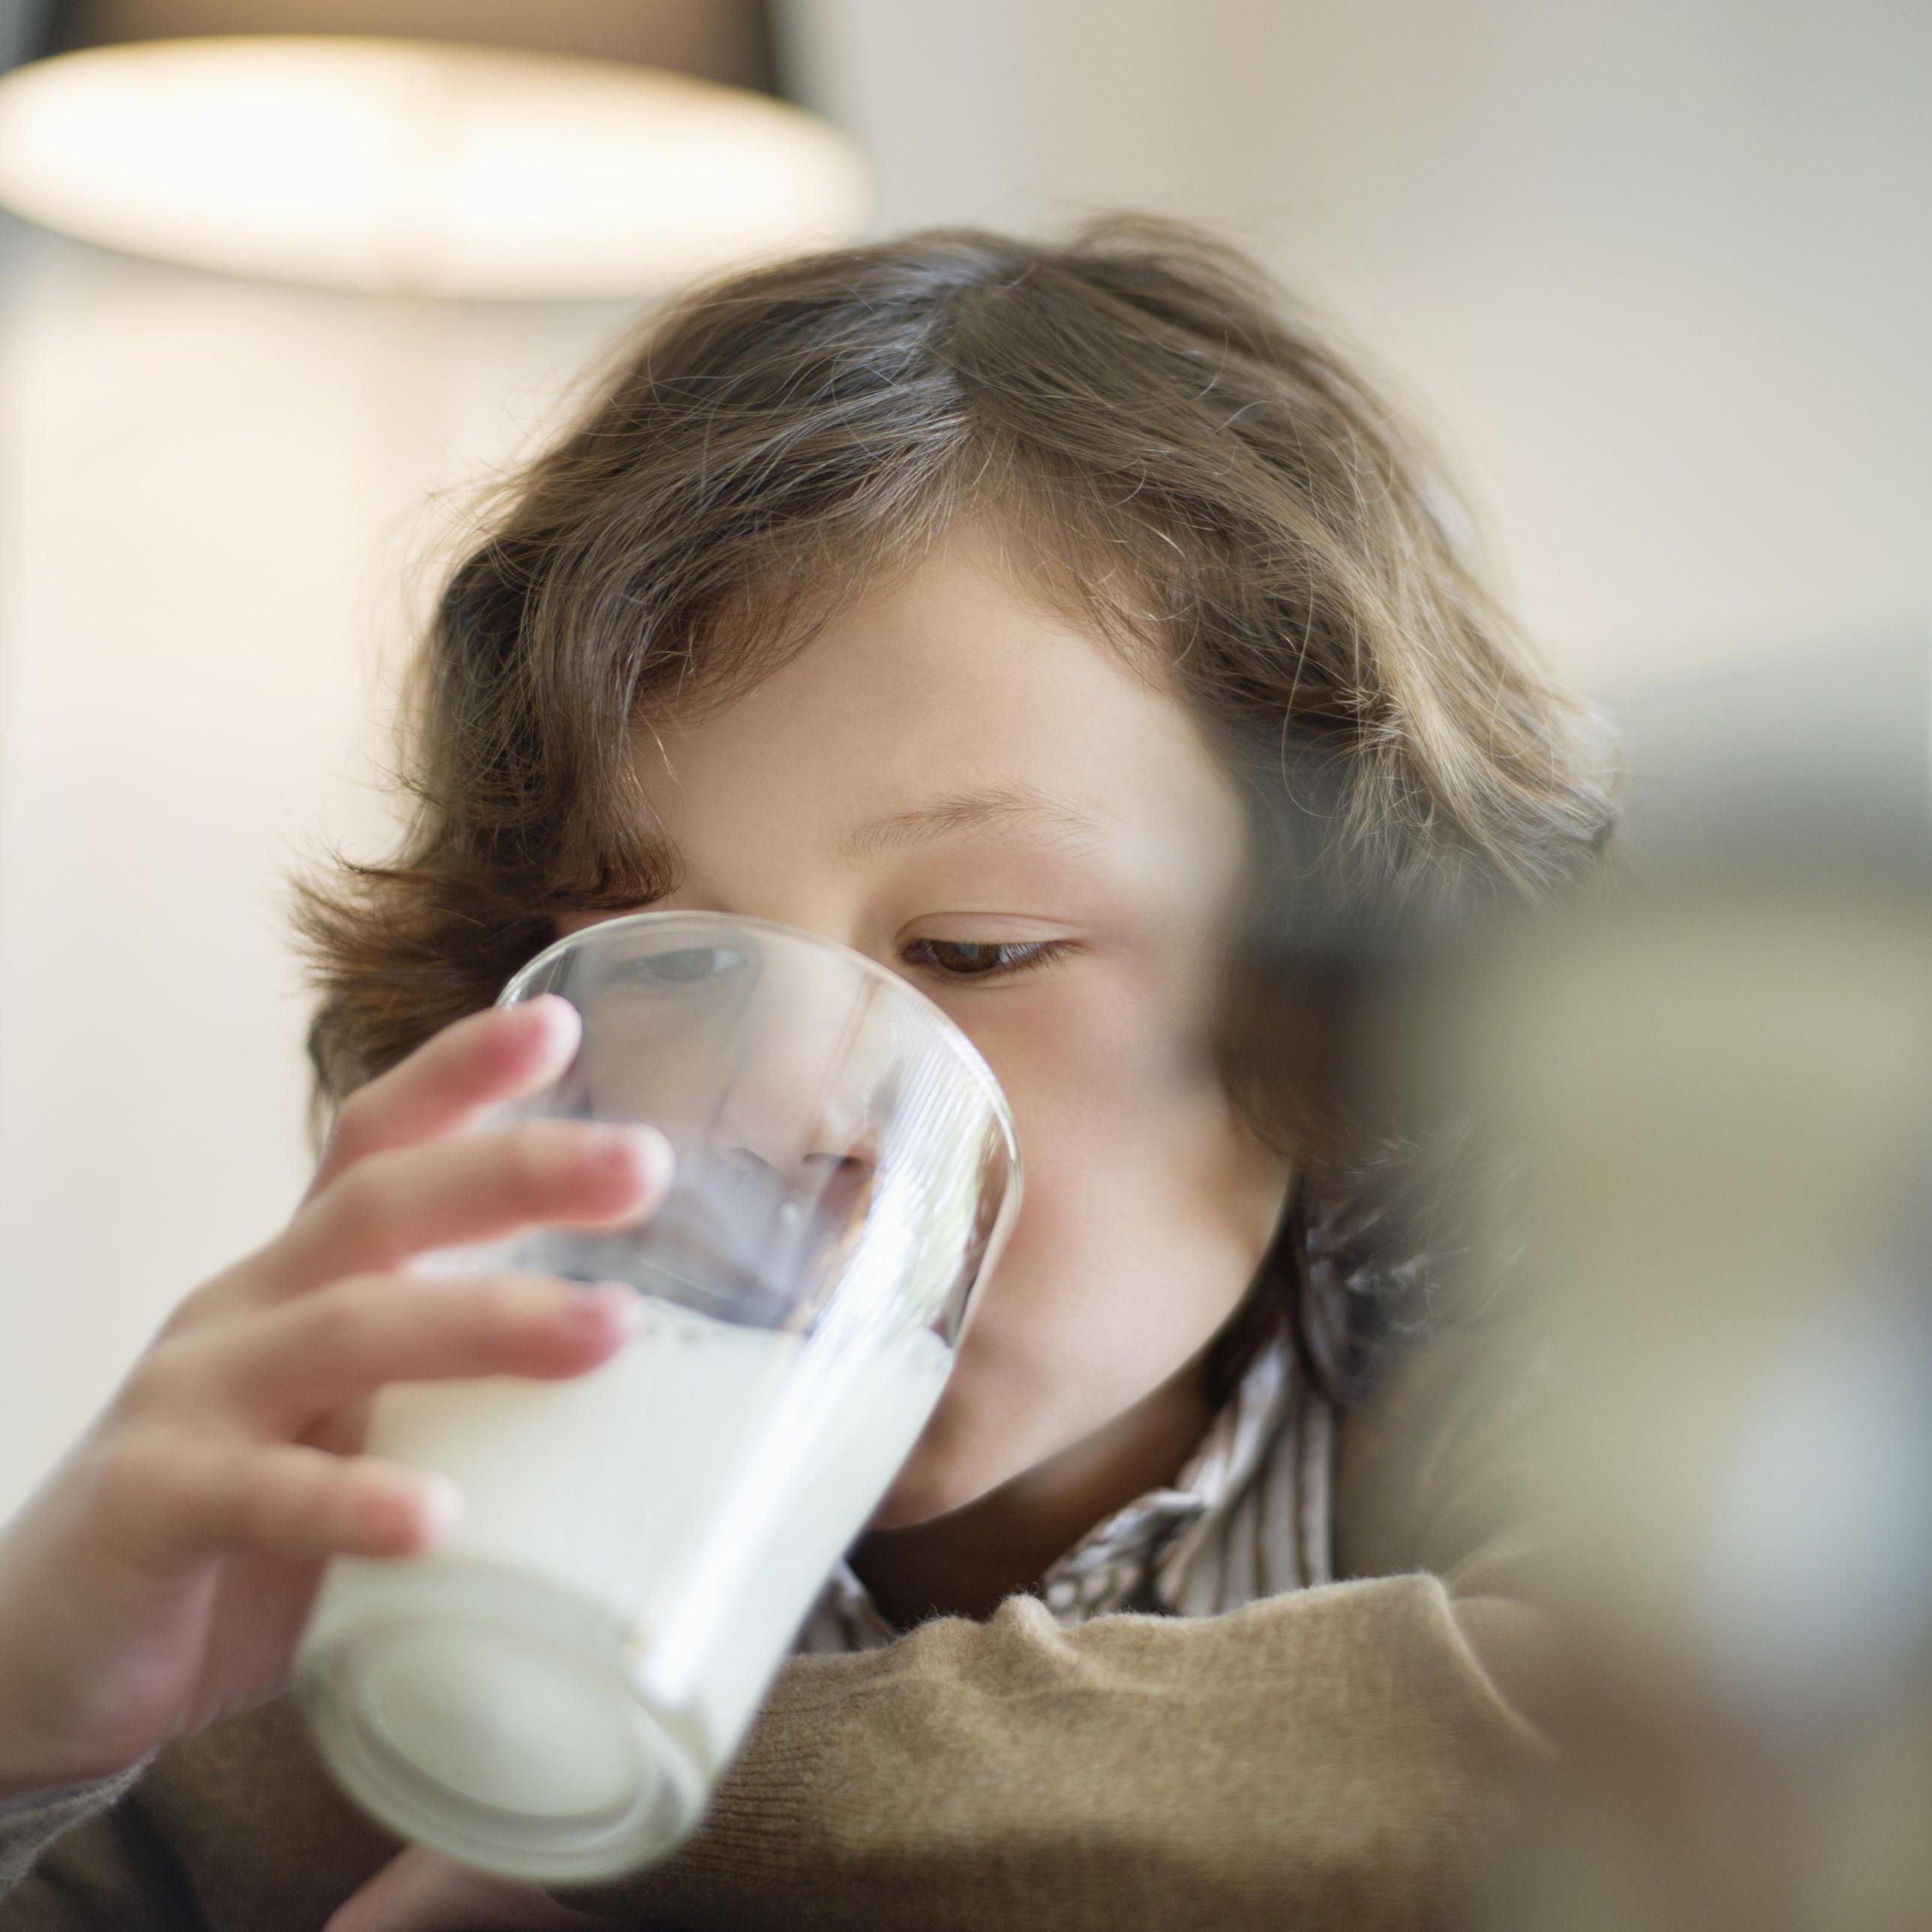 What Type of Milk to Give to Children